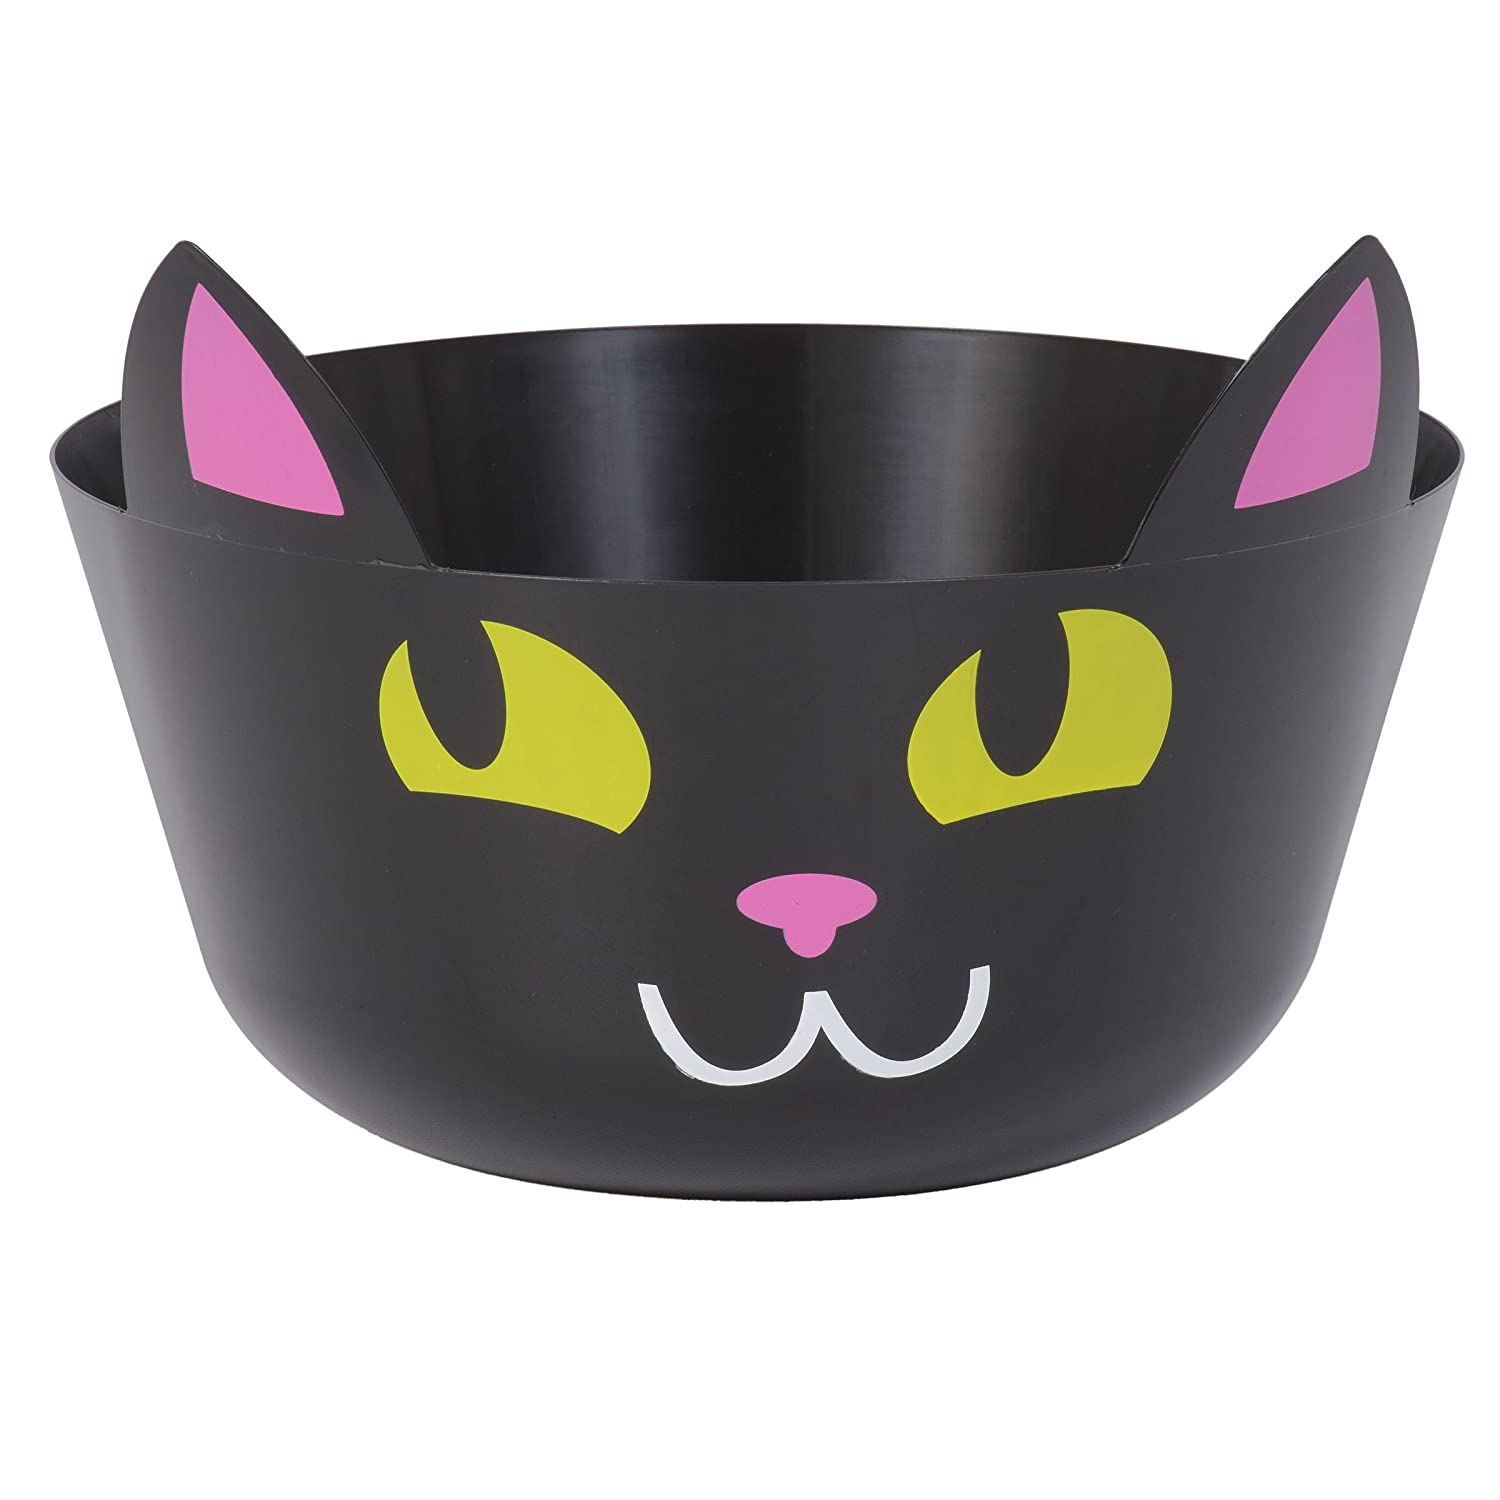 37da3ce654 Amazon.com  Halloween Black Cat Candy Treat Punch Bowl  Health   Personal  Care